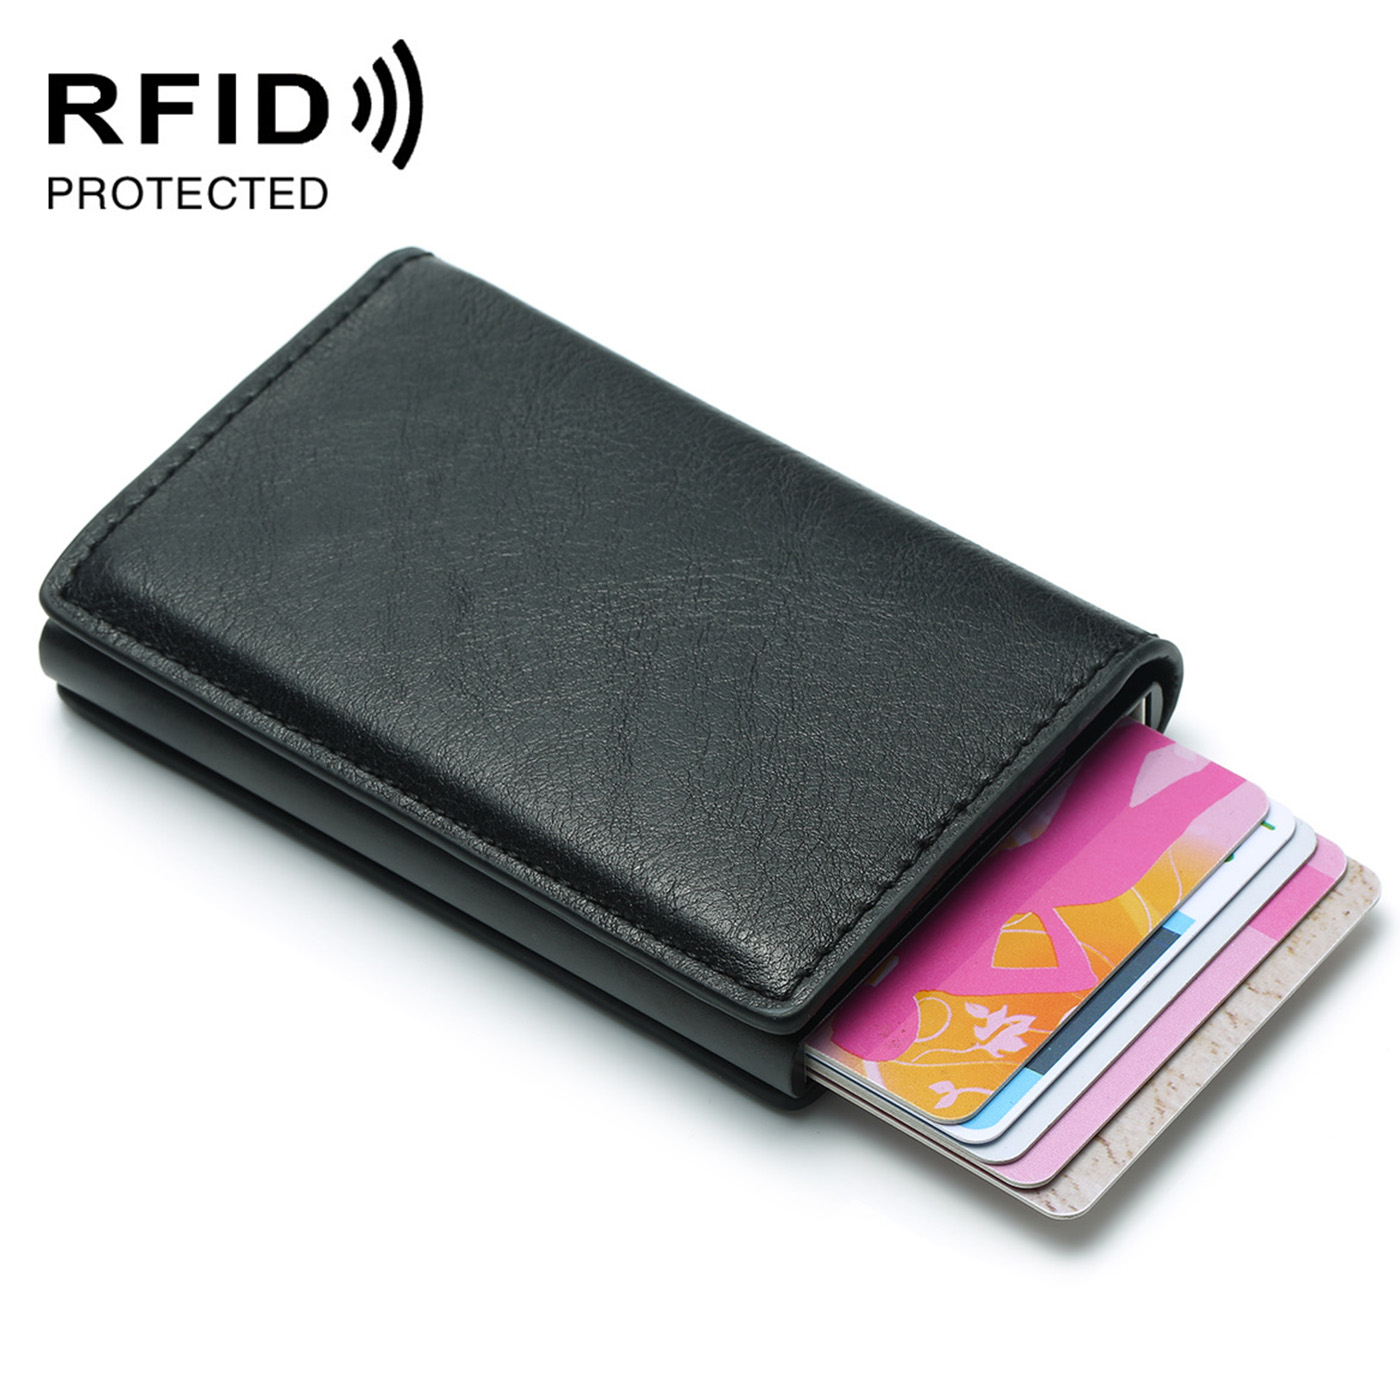 2019 Fashion Men's Credit Card Holder Anti RFID Blocking PU Leather Small Wallet ID Card Case Metal Protection Purse For Women